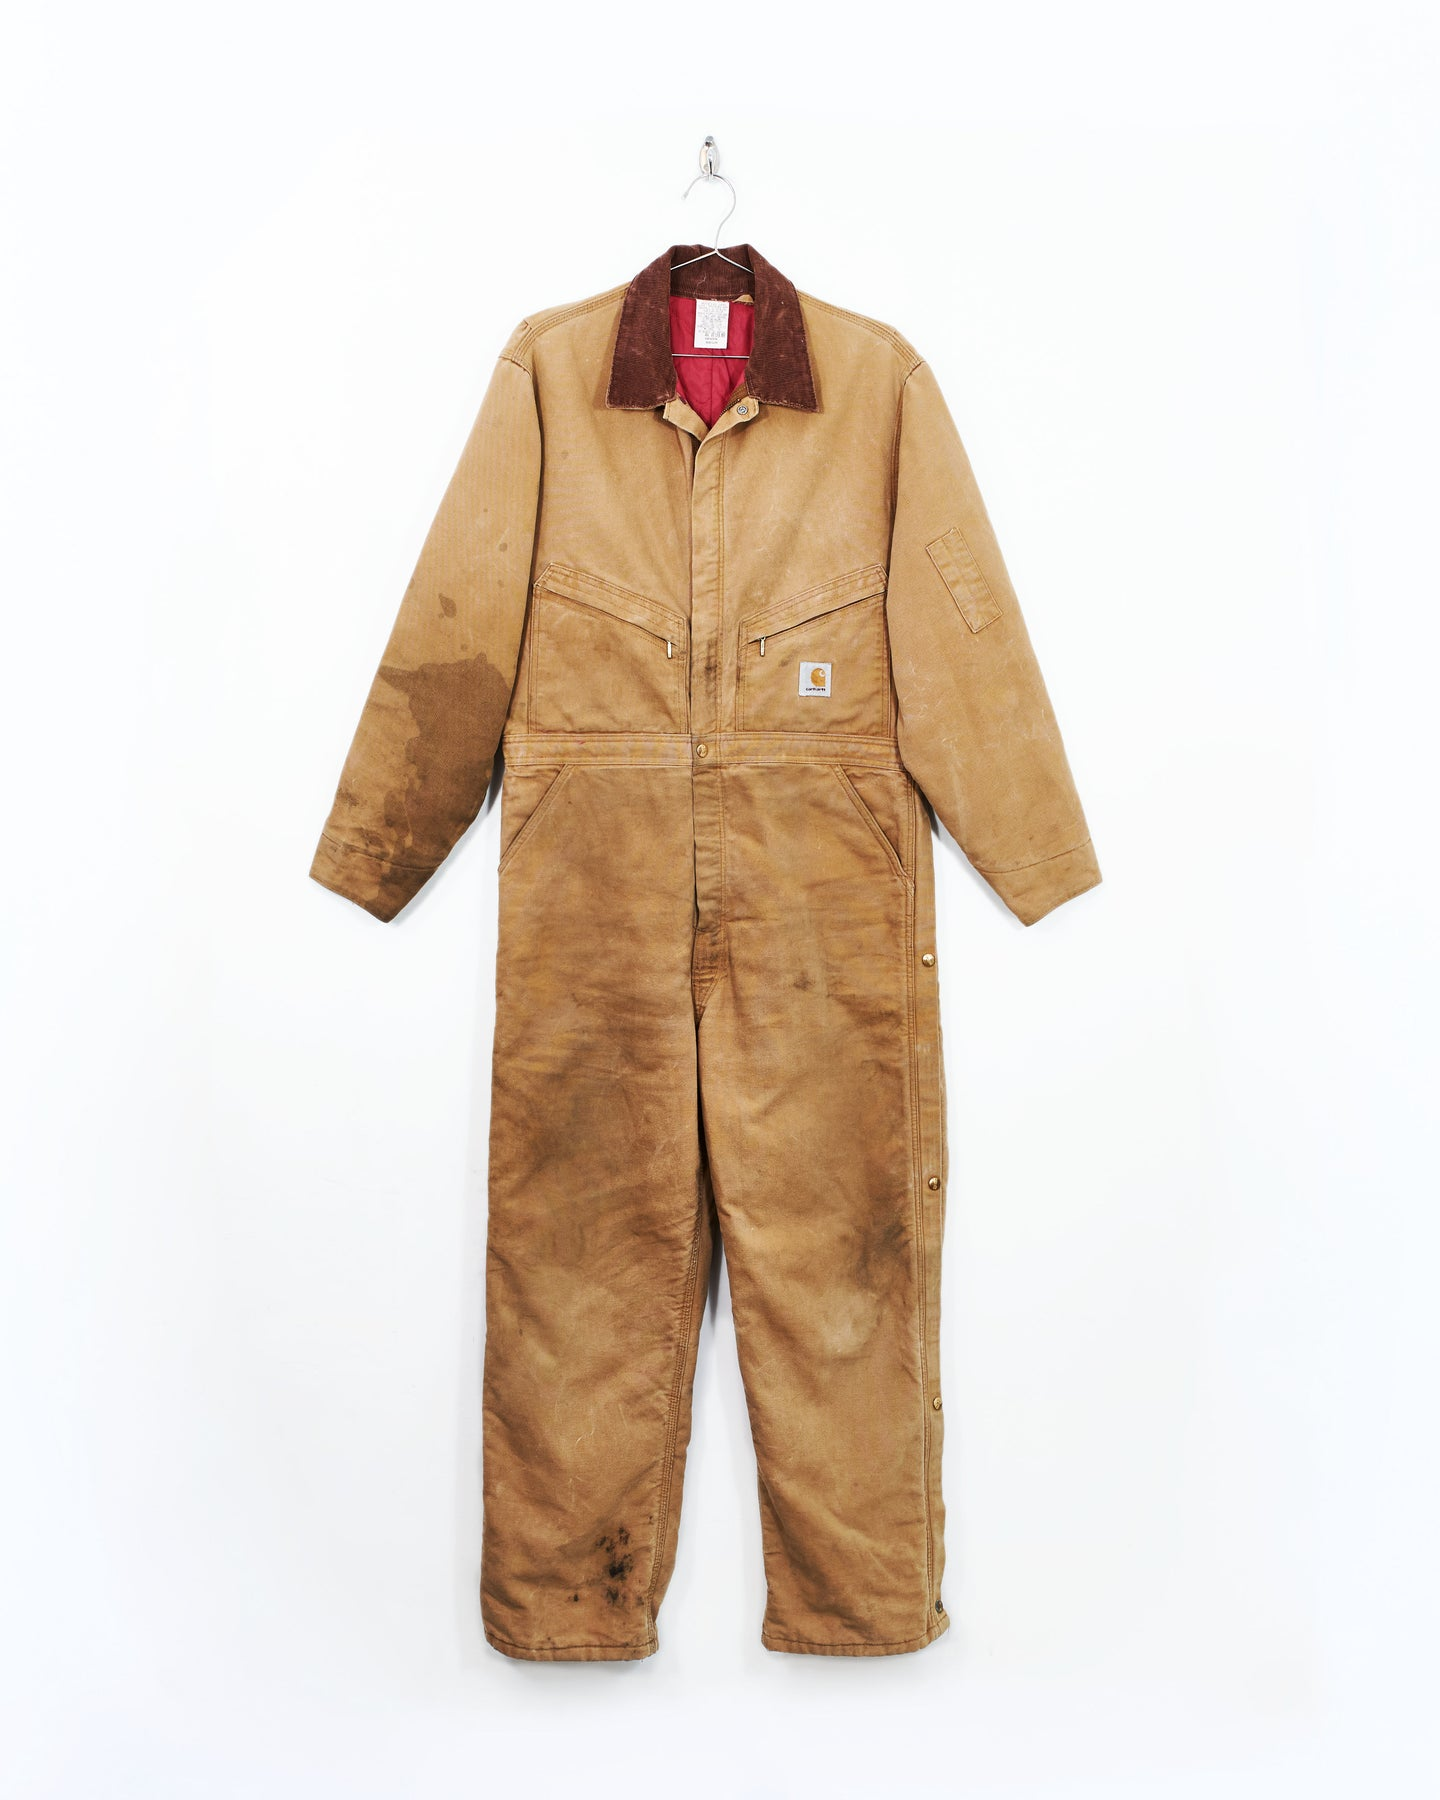 Insulated Carhartt Coveralls